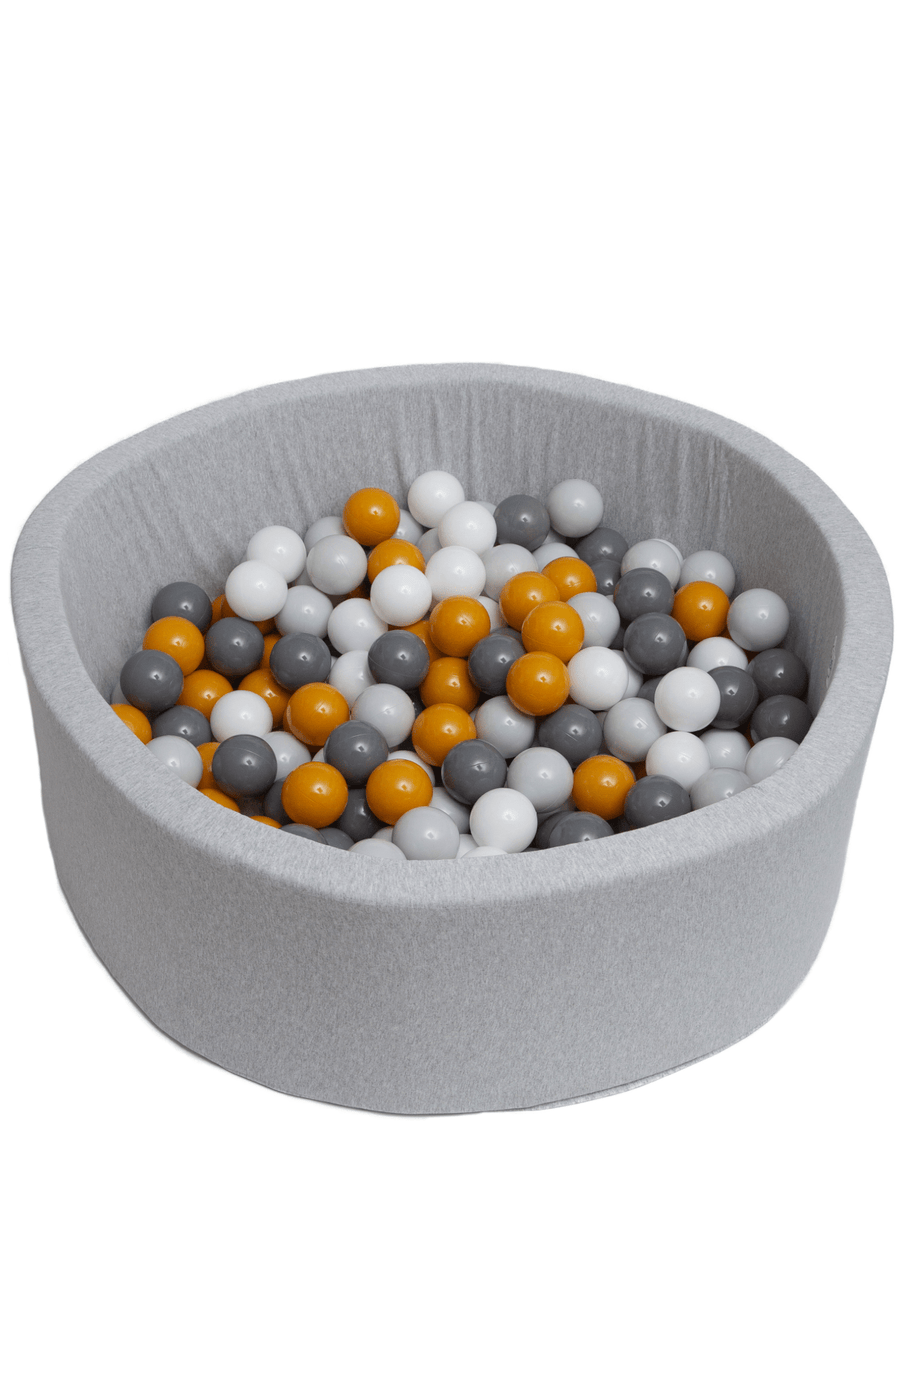 Mini Be Ball Pit - Mustard/Grey In Grey Pit